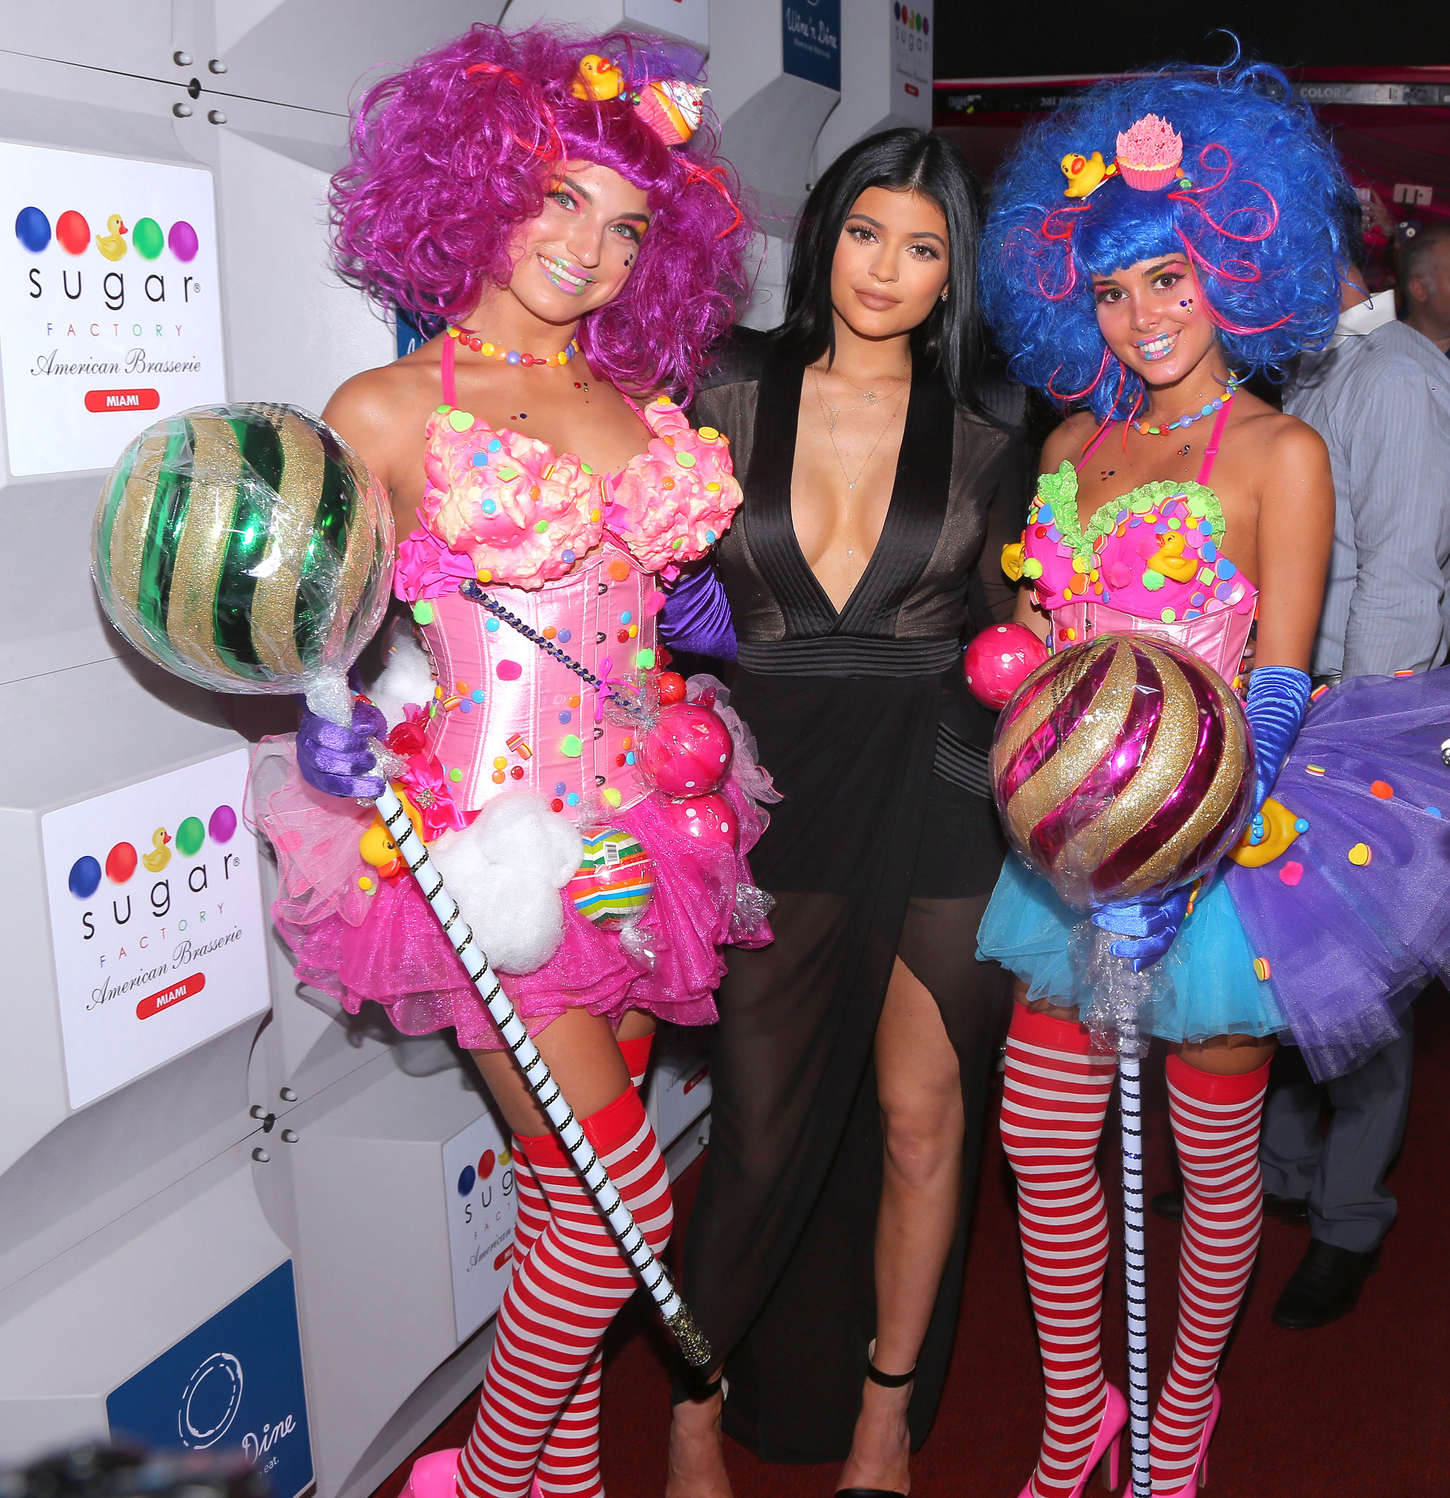 Kylie Jenner in a plunging dress at the Sugar Factory Opening in Miami Beach